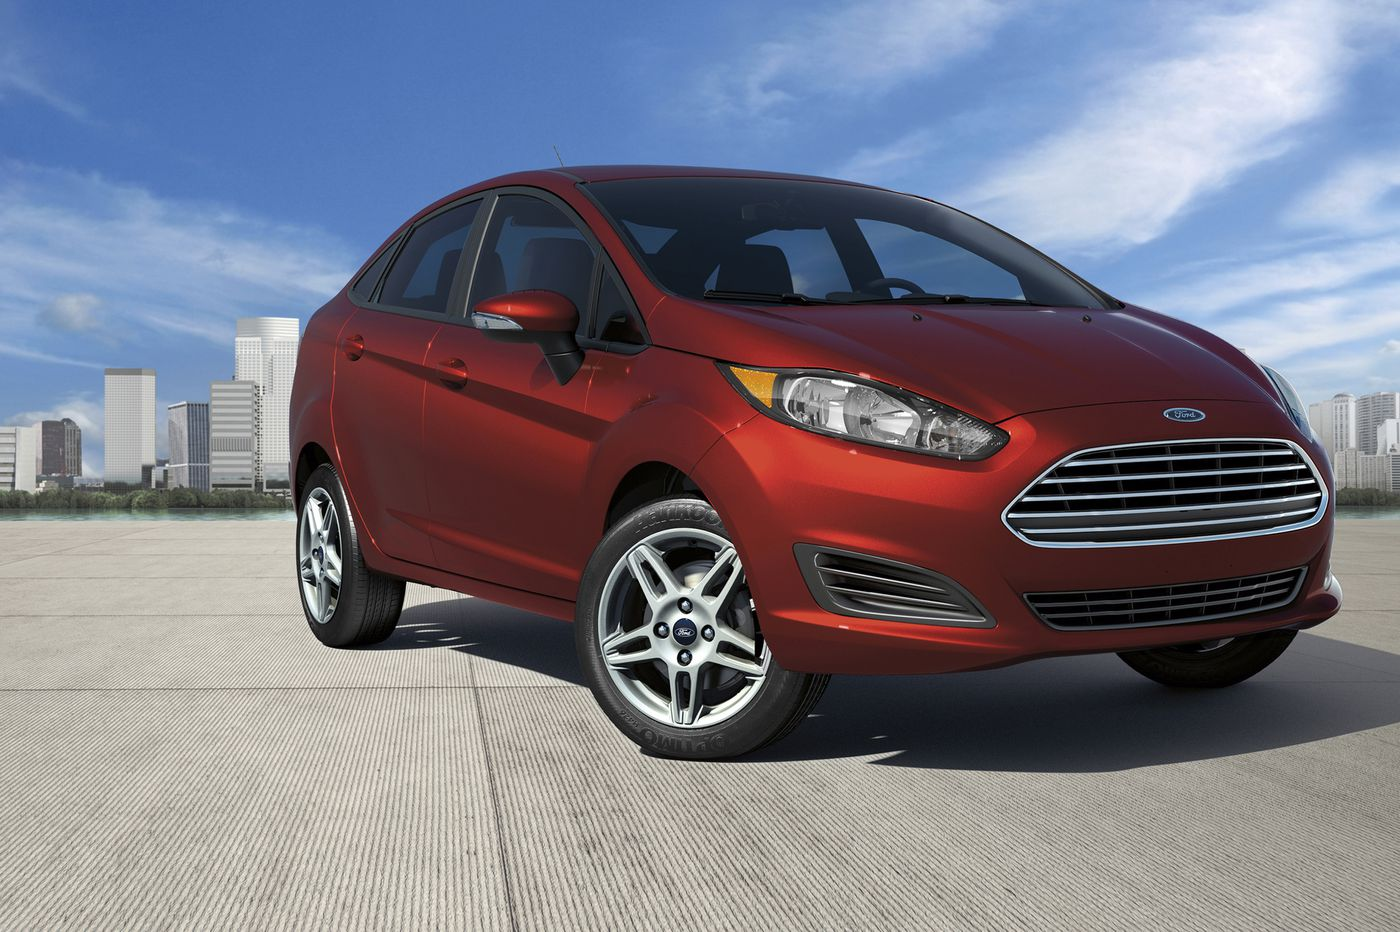 Edmunds rounds up today's top budget commuter cars